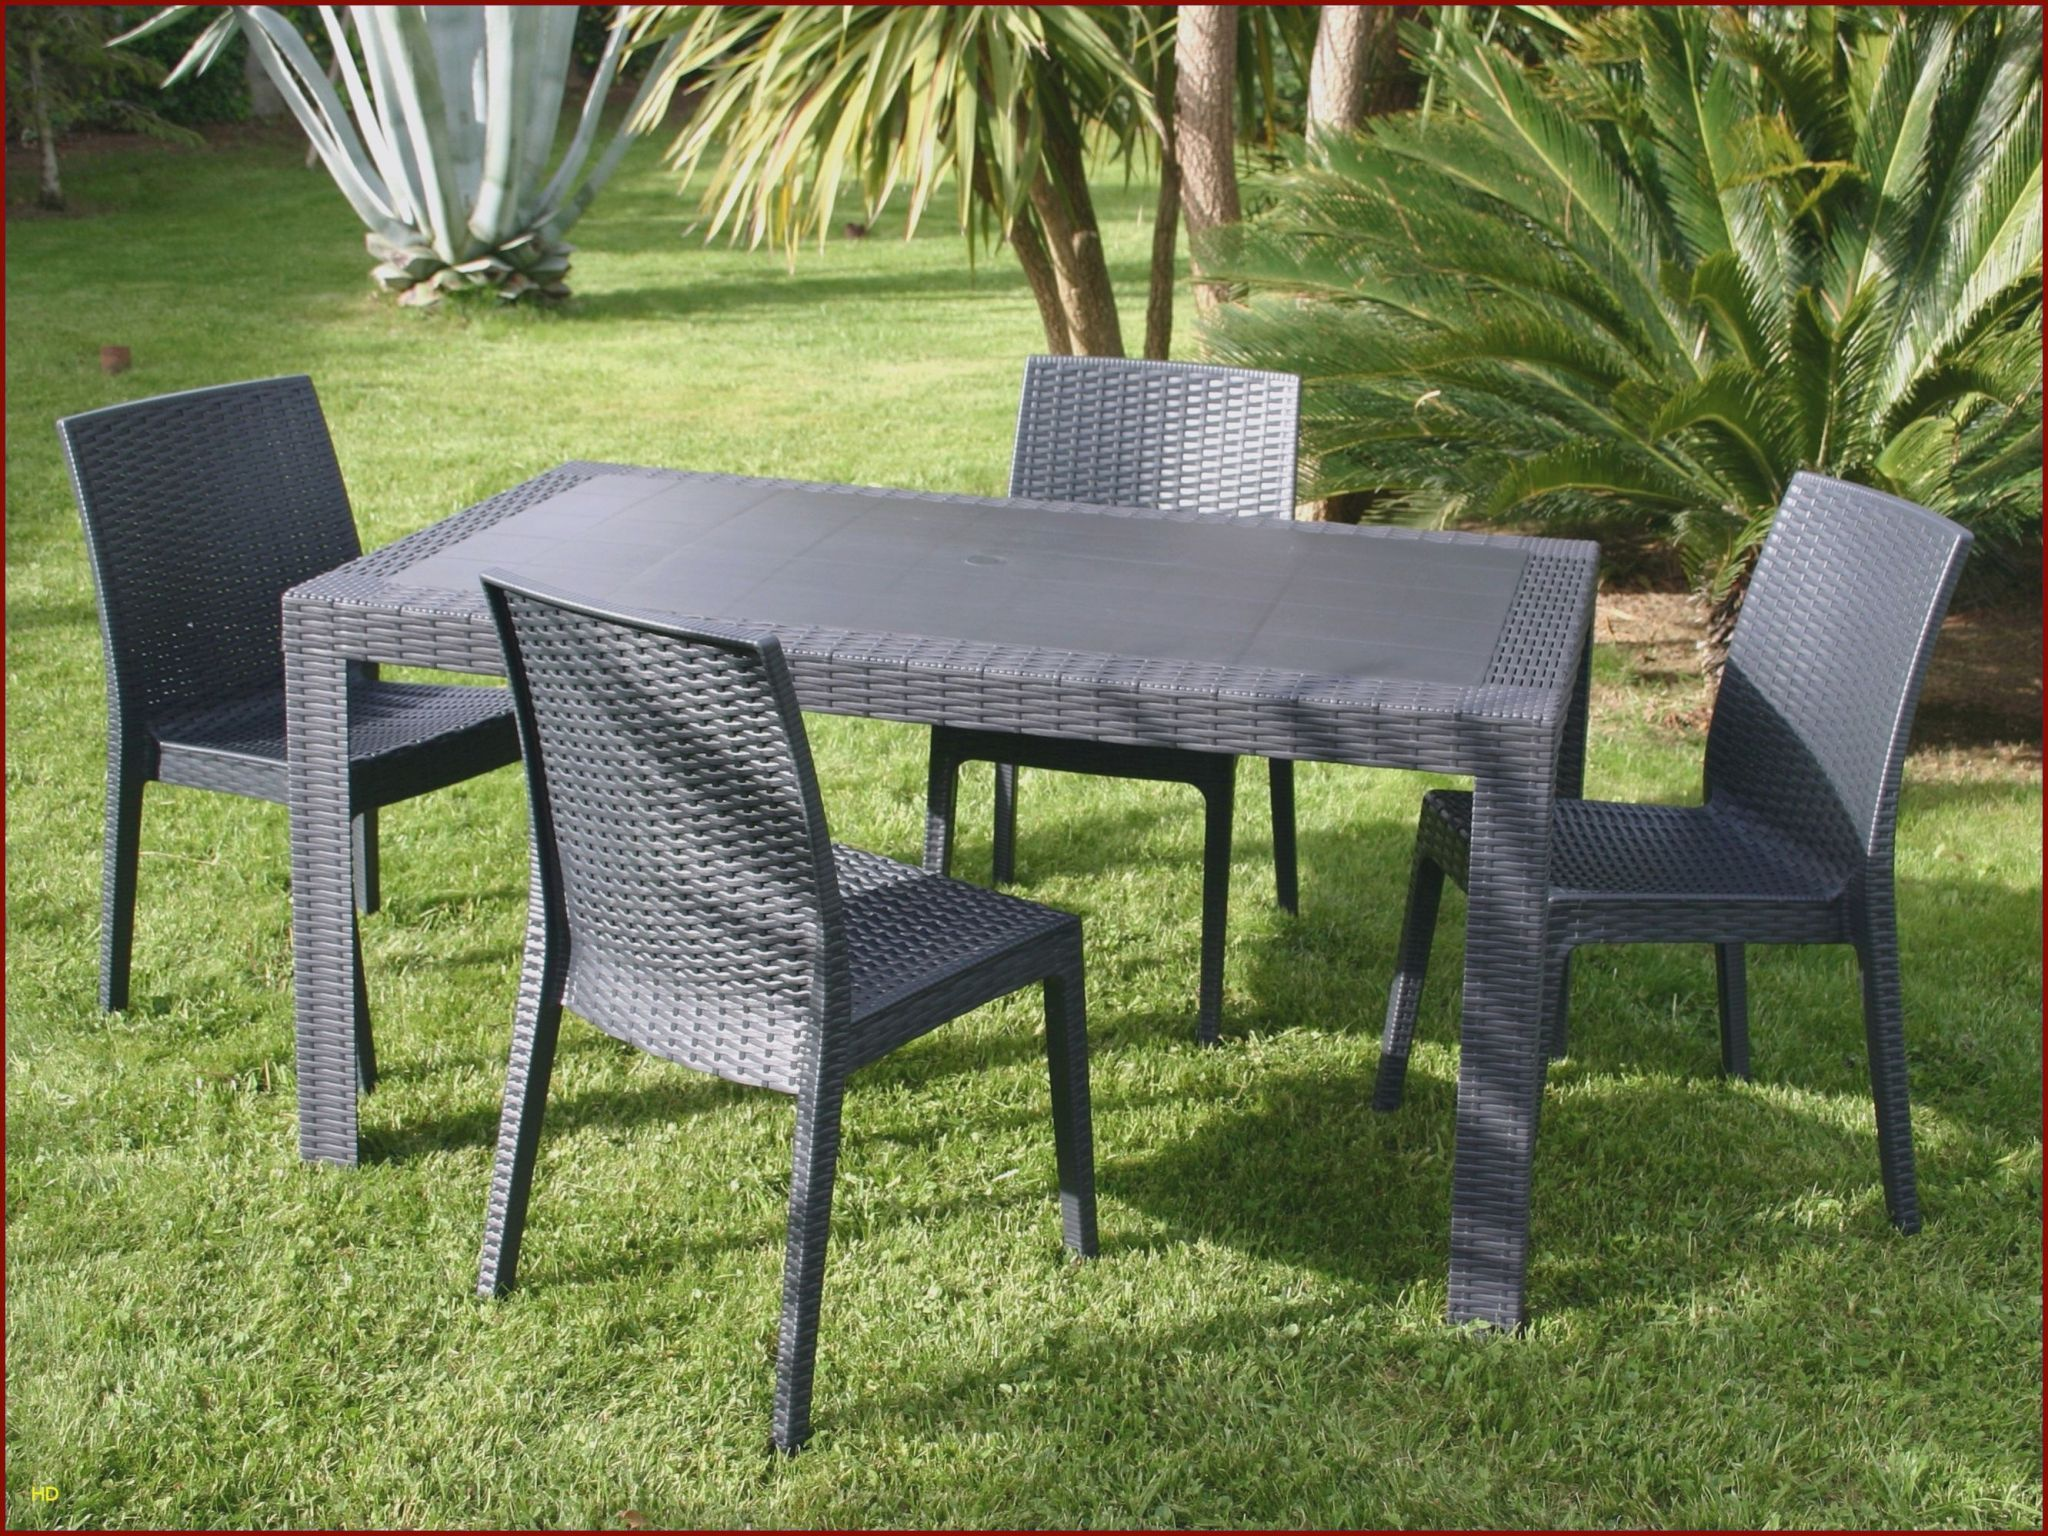 Table Ronde De Jardin Pas Cher Luxe Chaises Luxe Chaise Ice 0d Table Jardin Resine Lovely